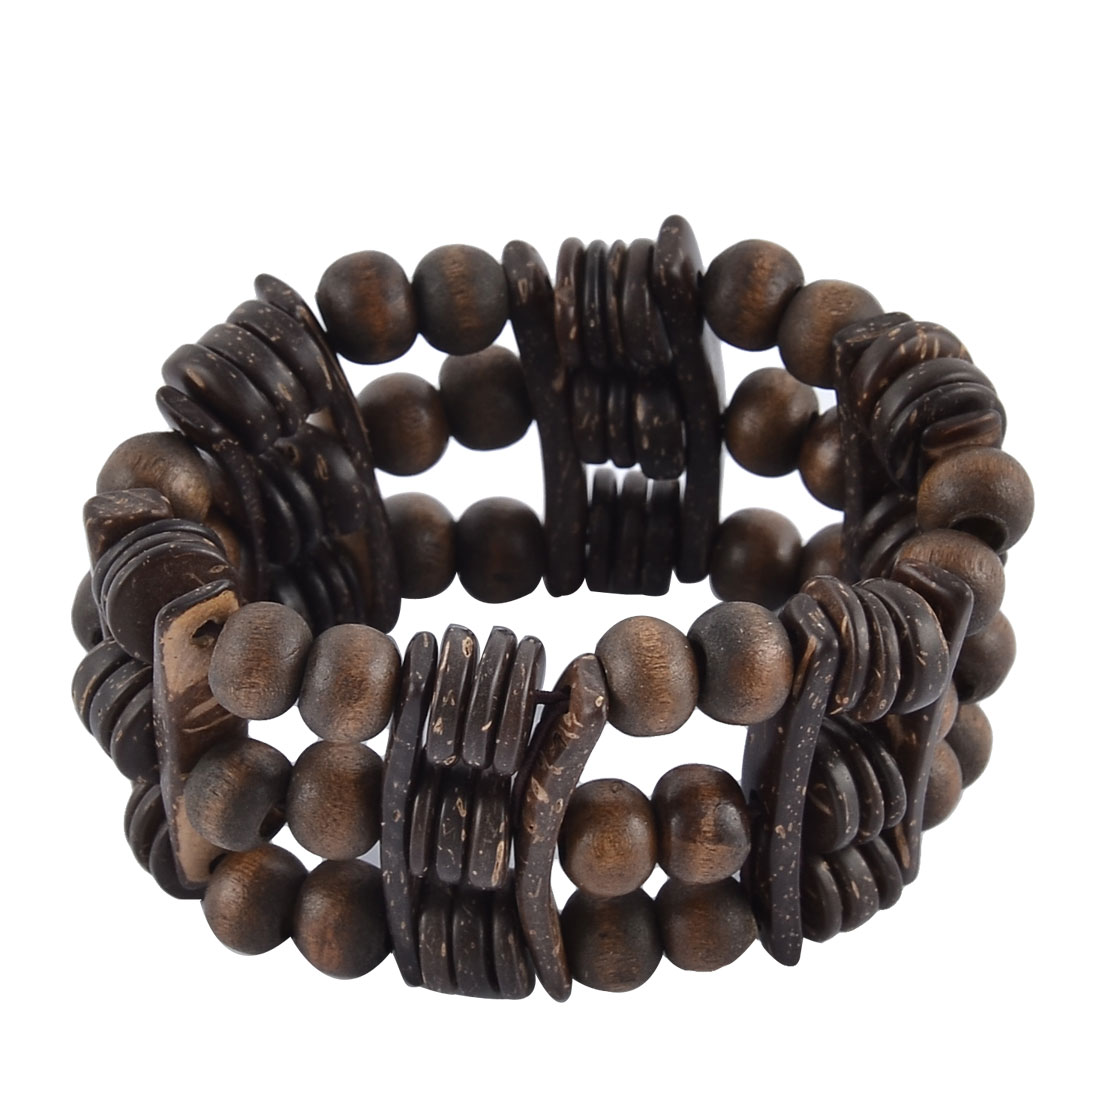 Women Wood Round Beads Stick Strap Elastic Wrist Bracelet Bangle Dark Brown